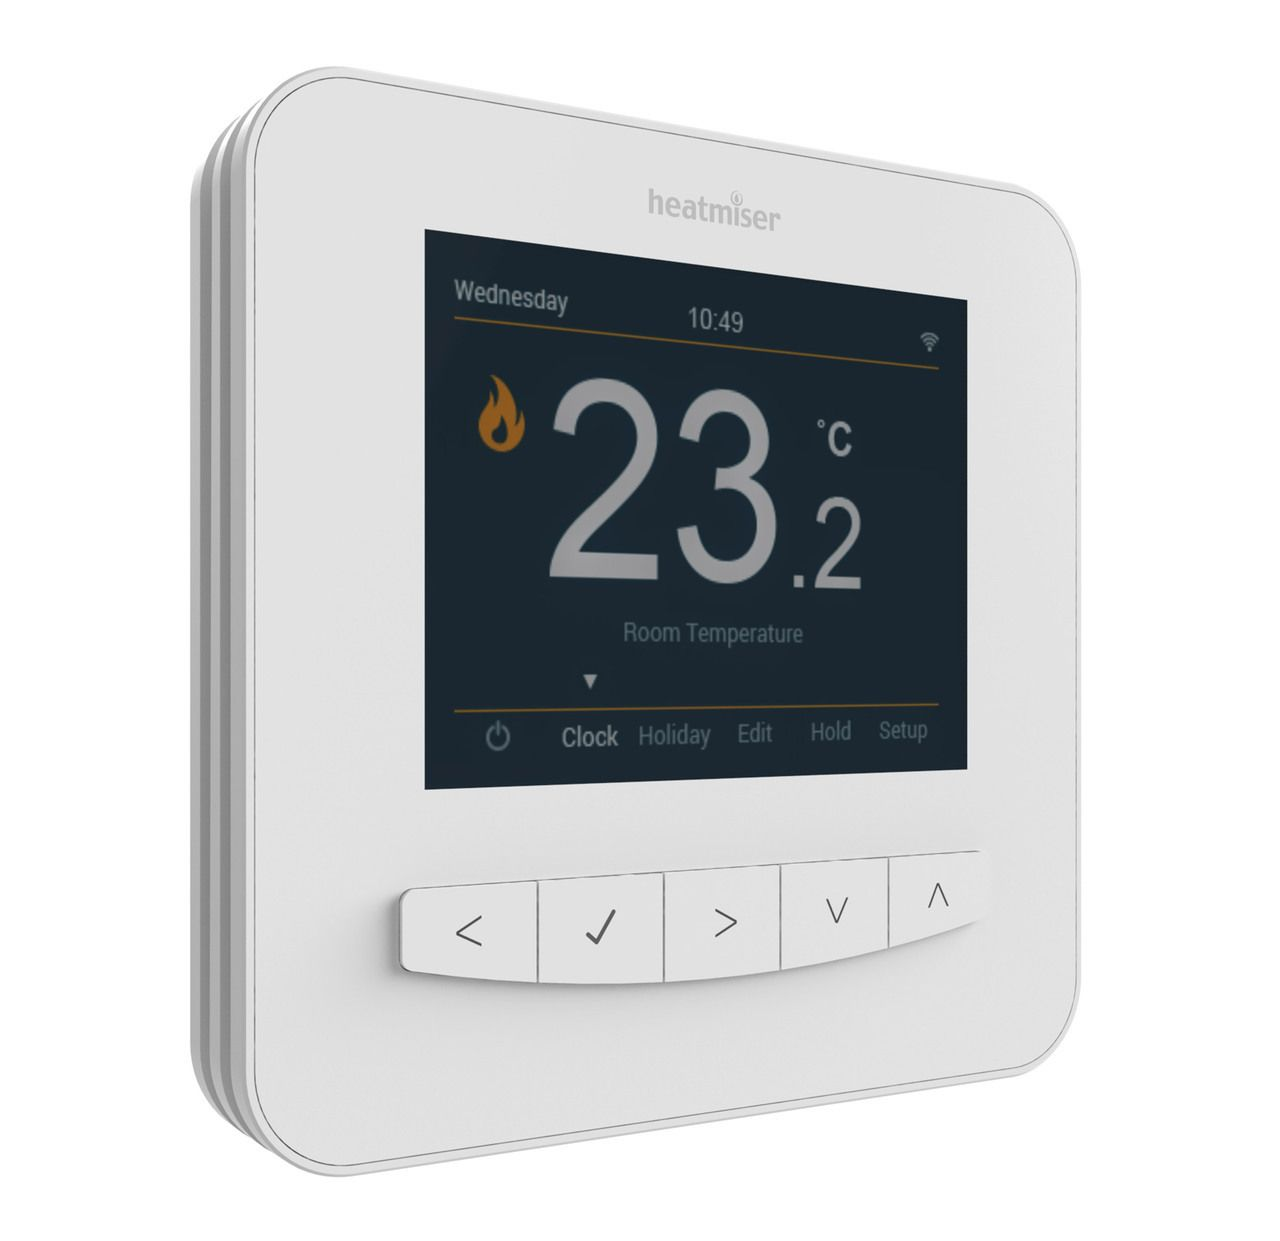 Image result for thermostats Thermostat, Room thermostat